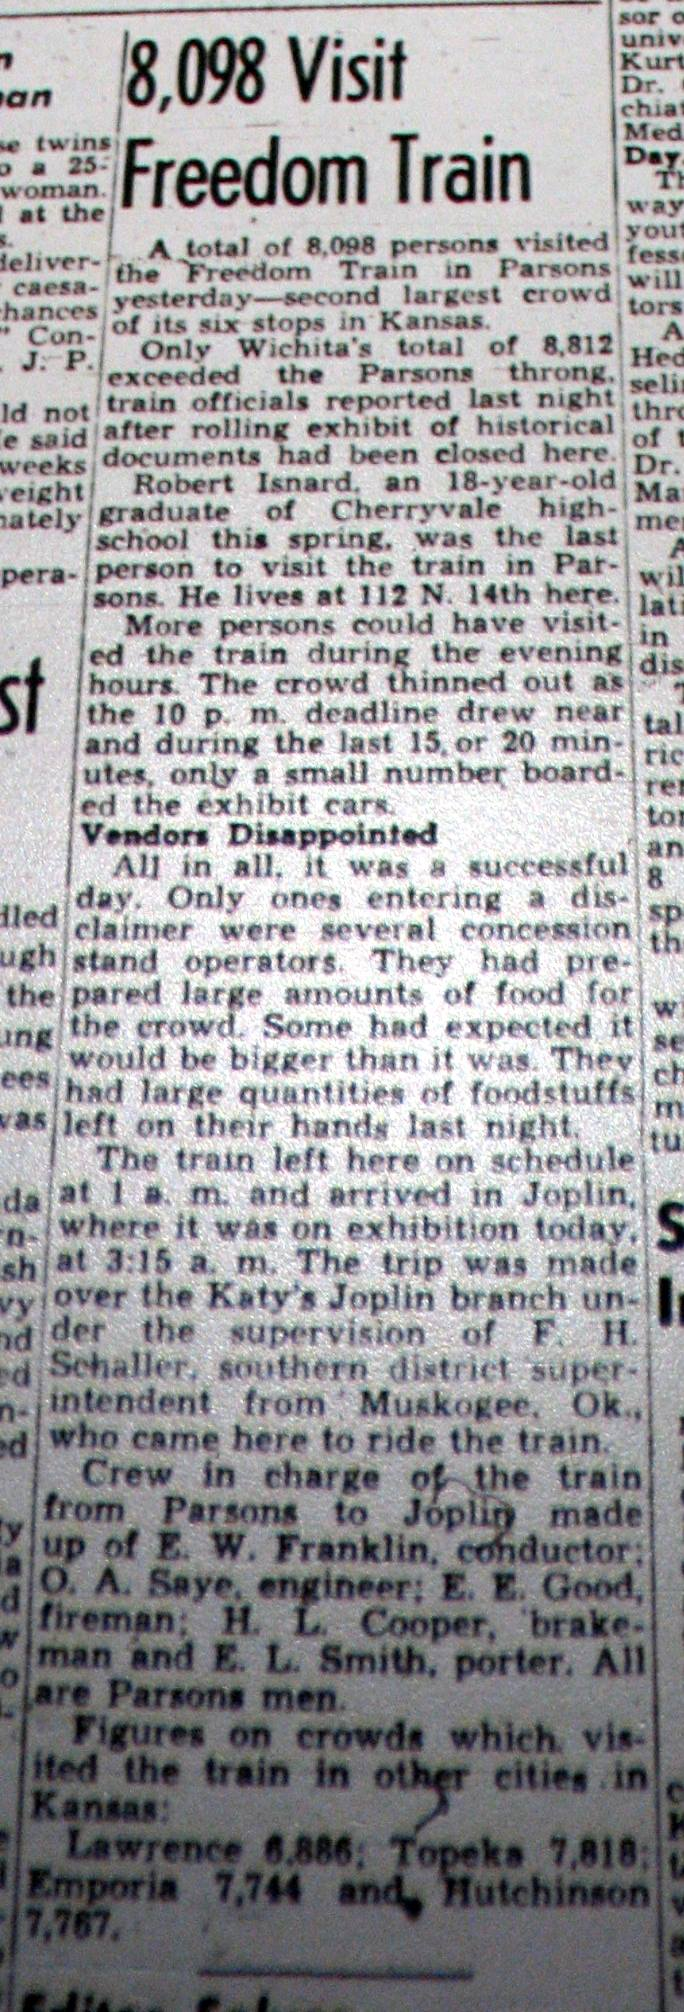 #143 STEVE COOPER'S DAD, D B COOPER, IS PART OF THE KATY TRAIN CREW IN THIS NEWSPAPER CLIPPING near the bottom OR MAYBE H. L. COOPER